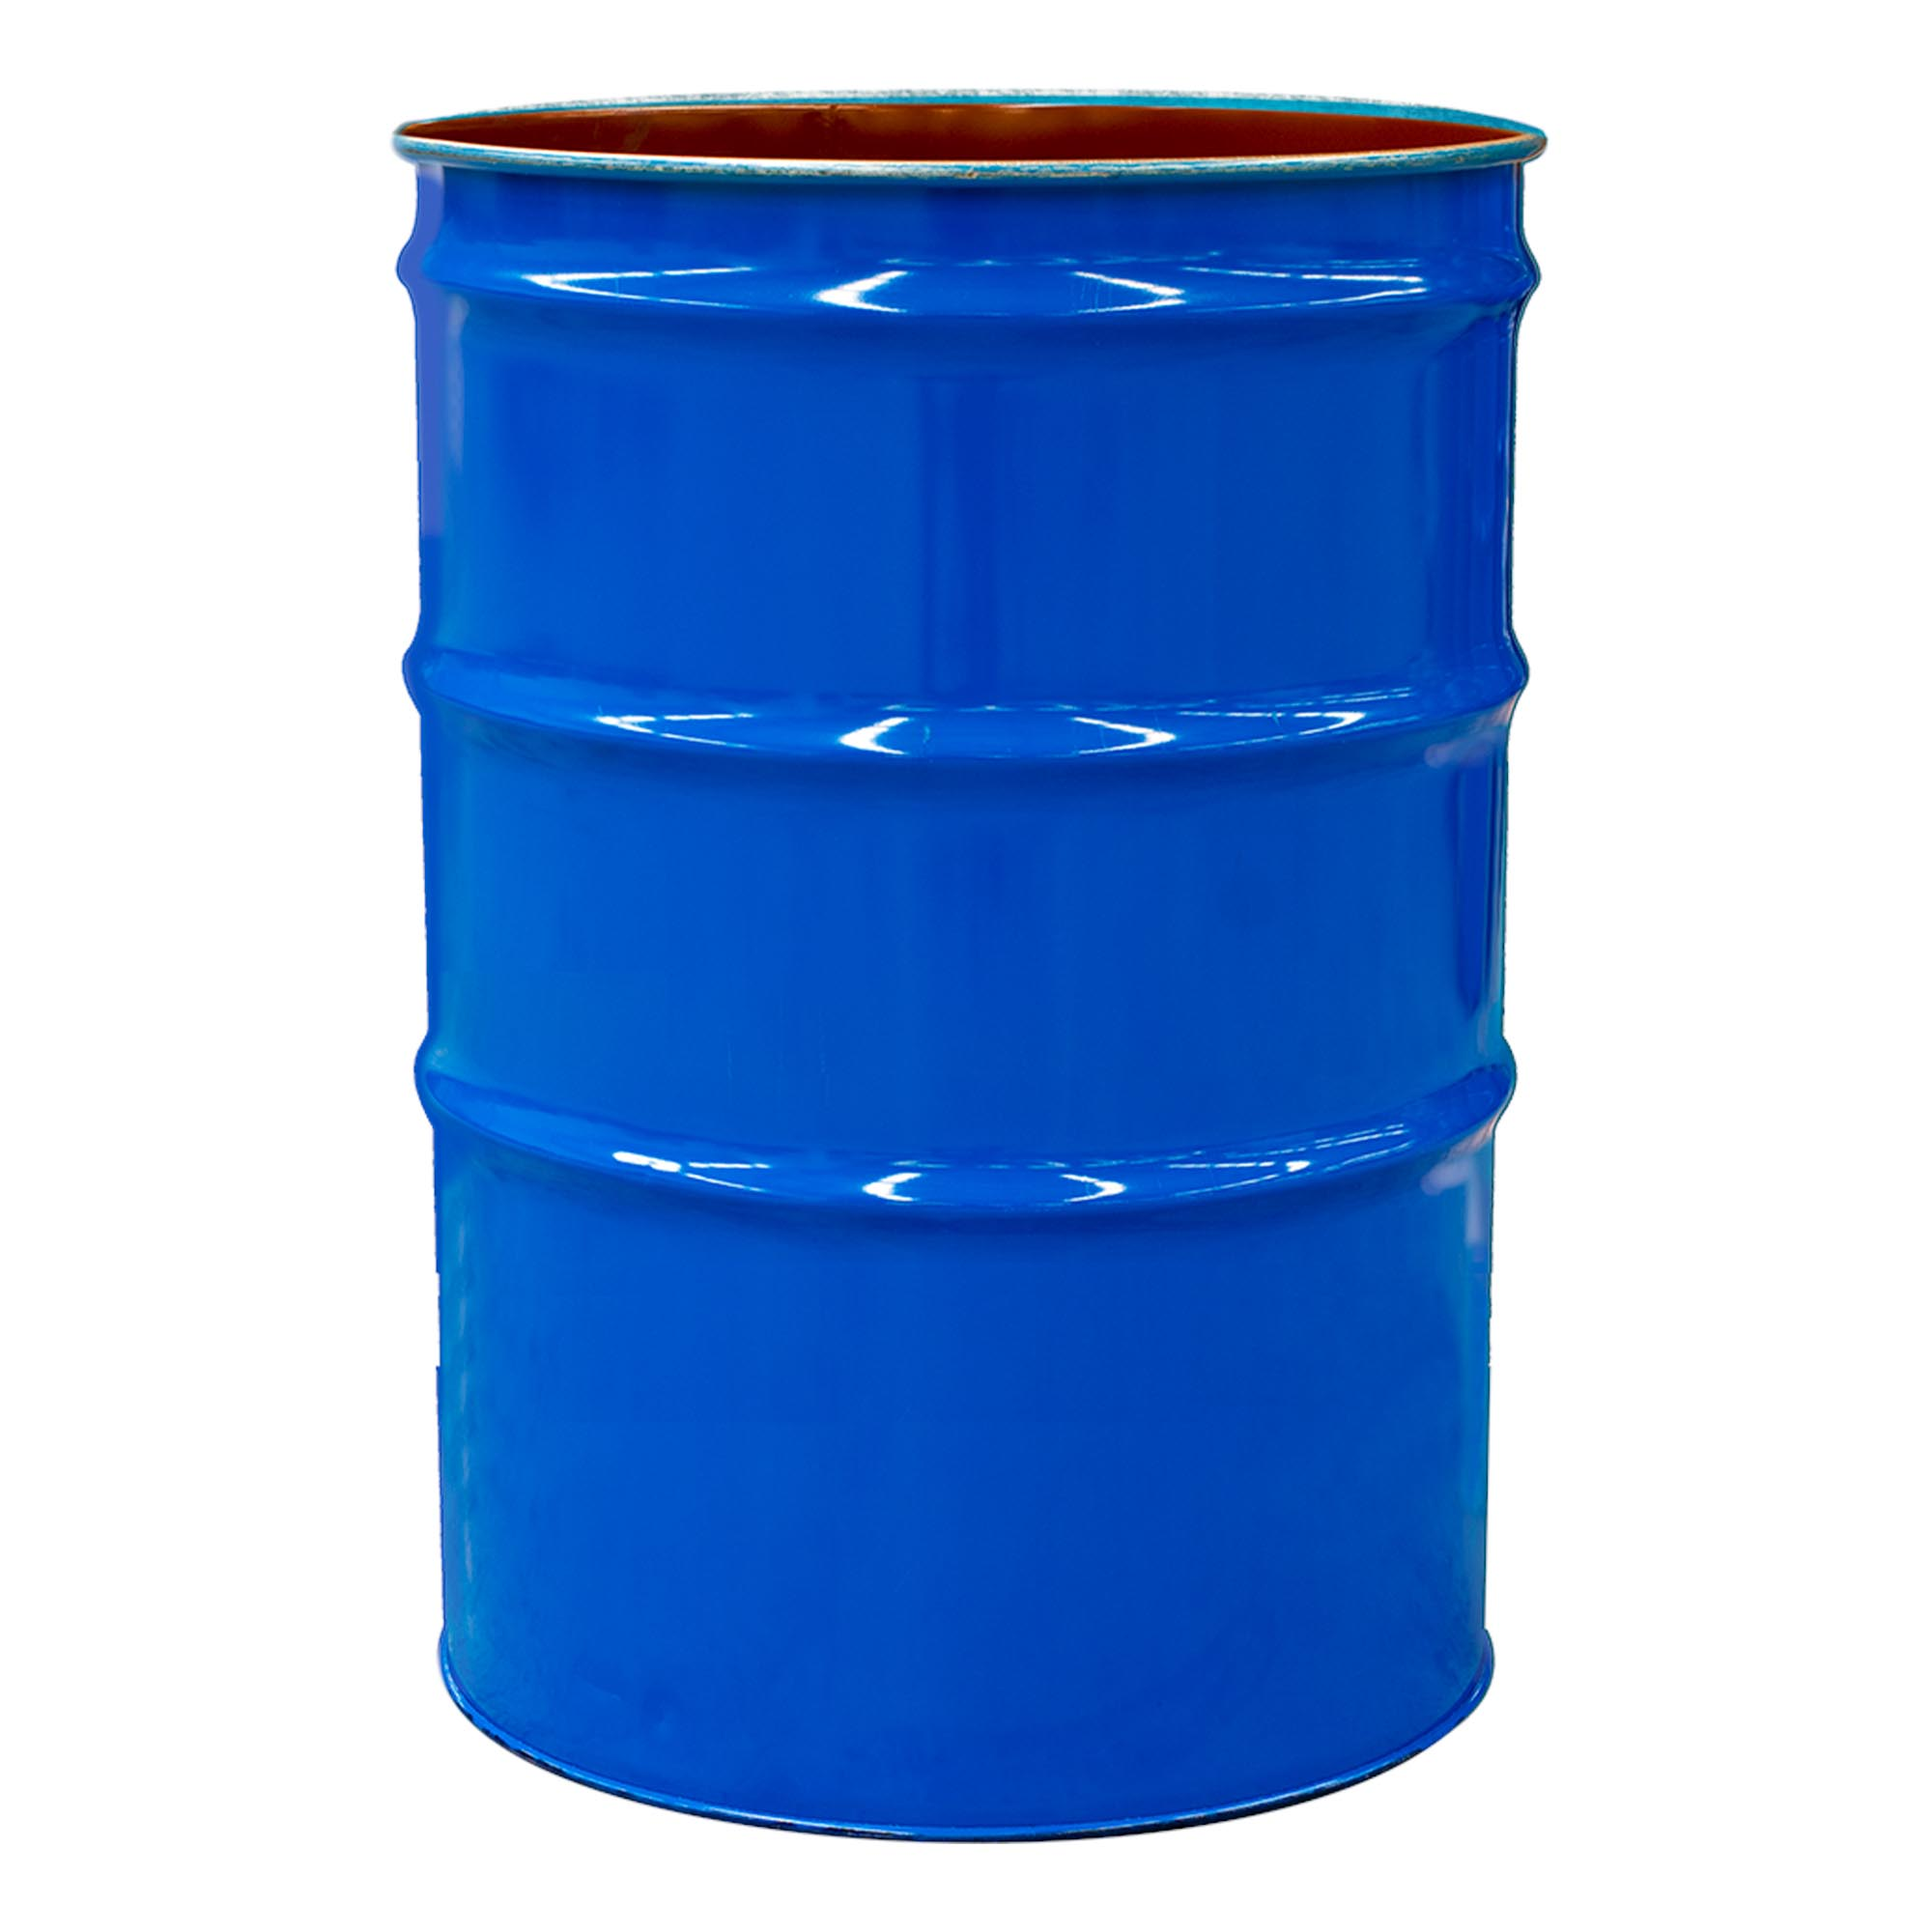 Model 901069-110 110 Gallon Drum only